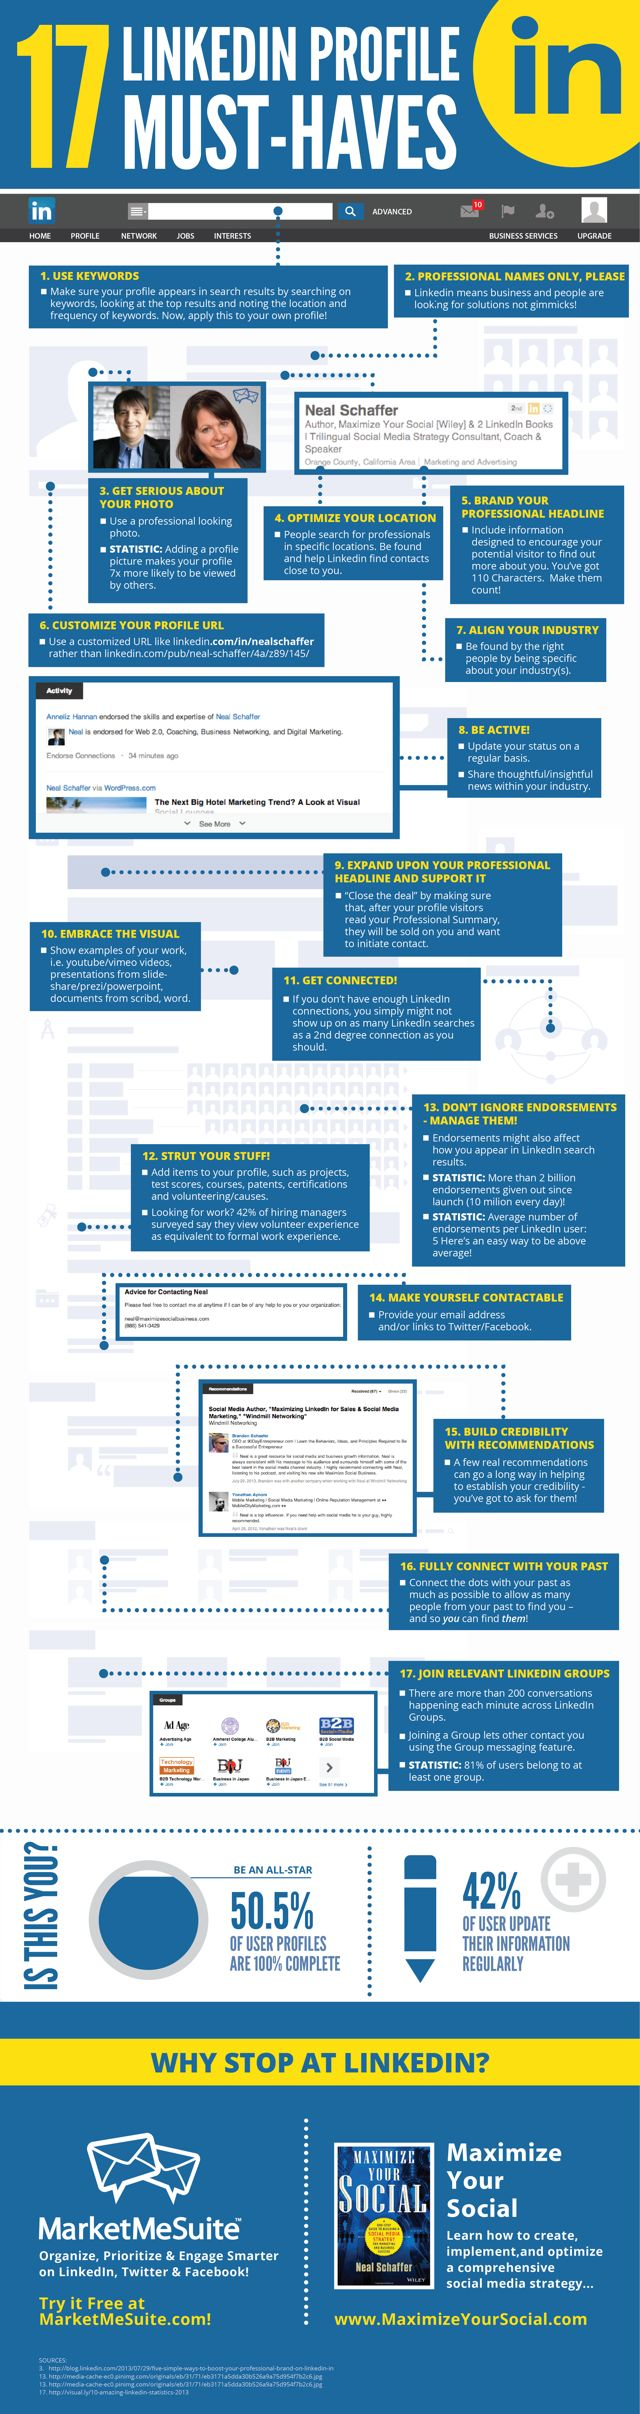 17 LinkedIn Profile Must-Haves [Infographic] #infographic #LinkedIn